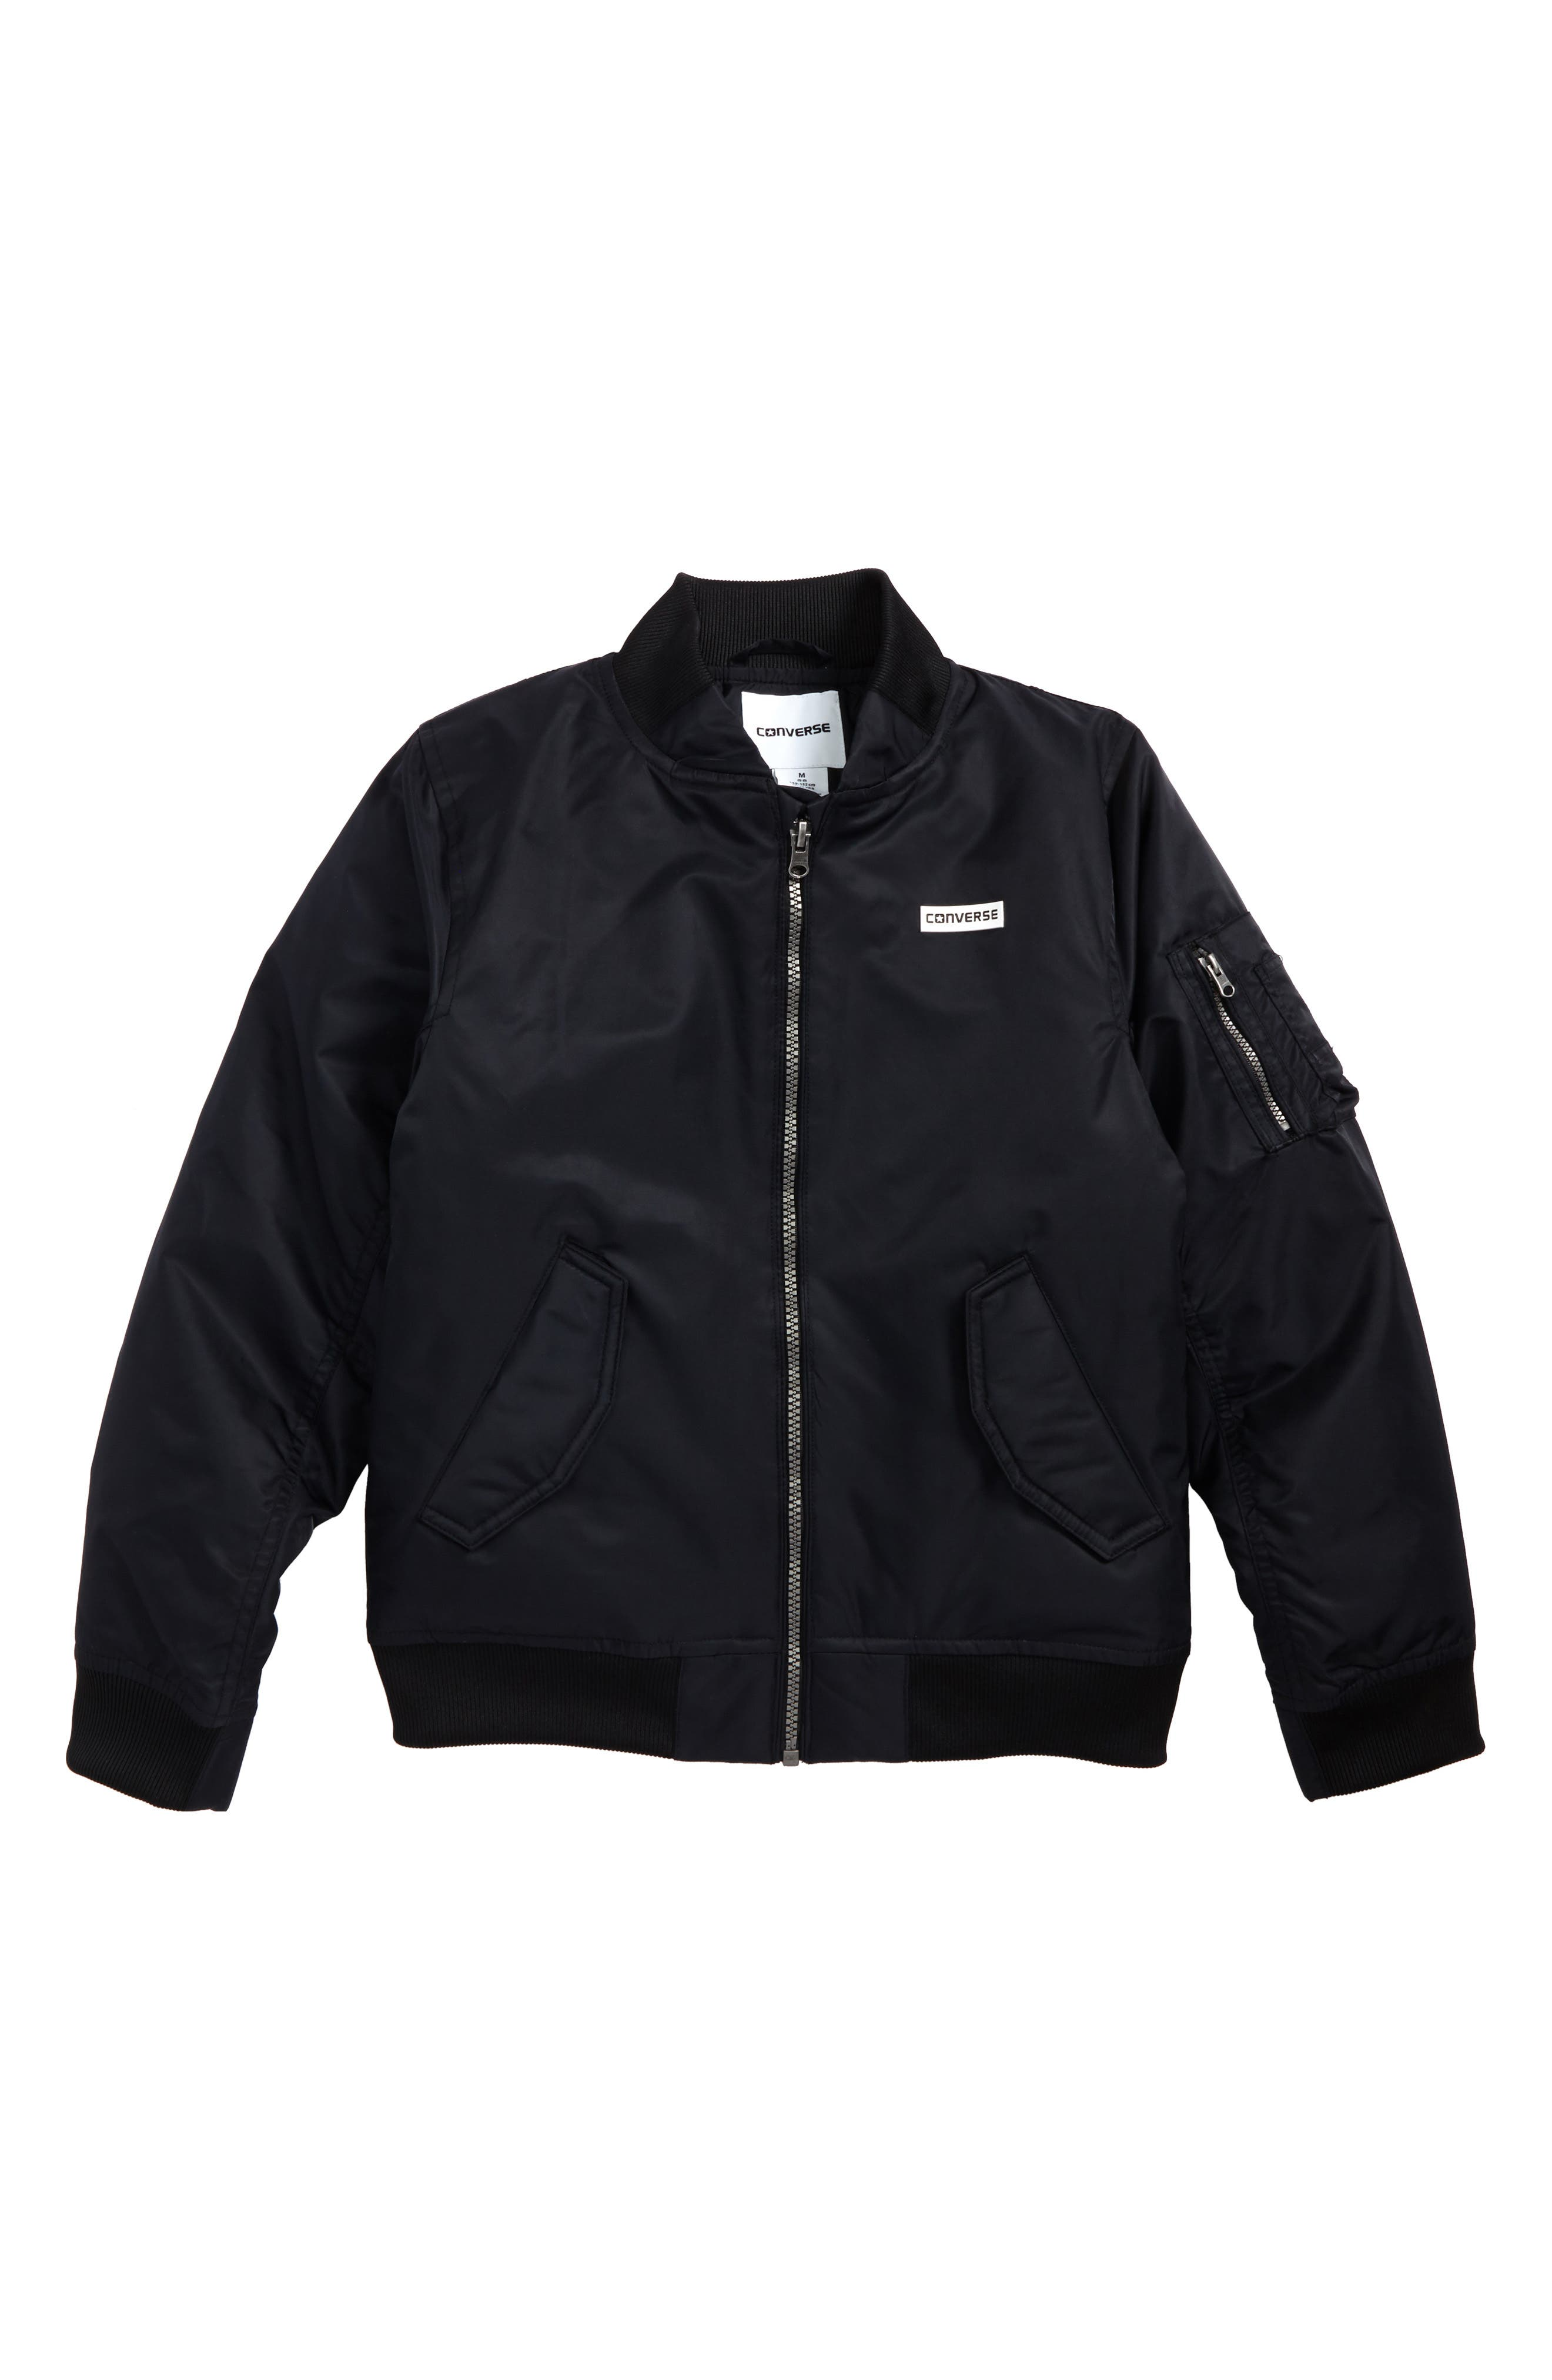 MA-1 Water Repellent Bomber Jacket,                             Main thumbnail 1, color,                             001